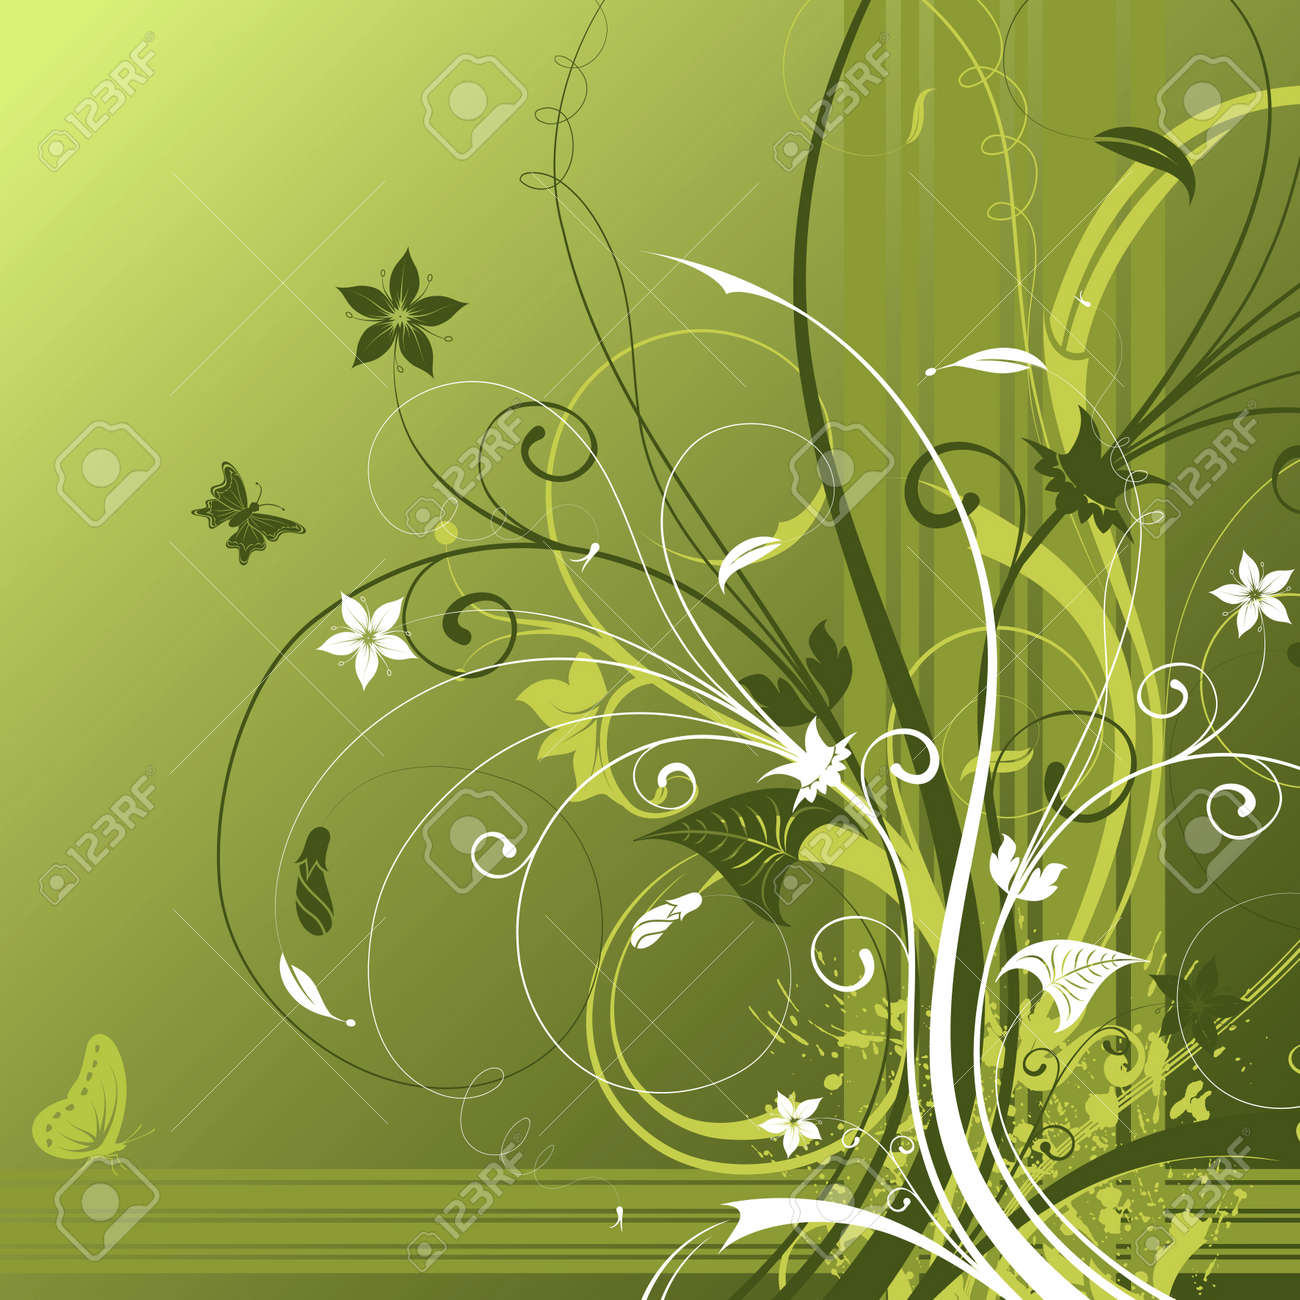 Abstract flower background with butterfly, element for design, vector illustration Stock Photo - 960144